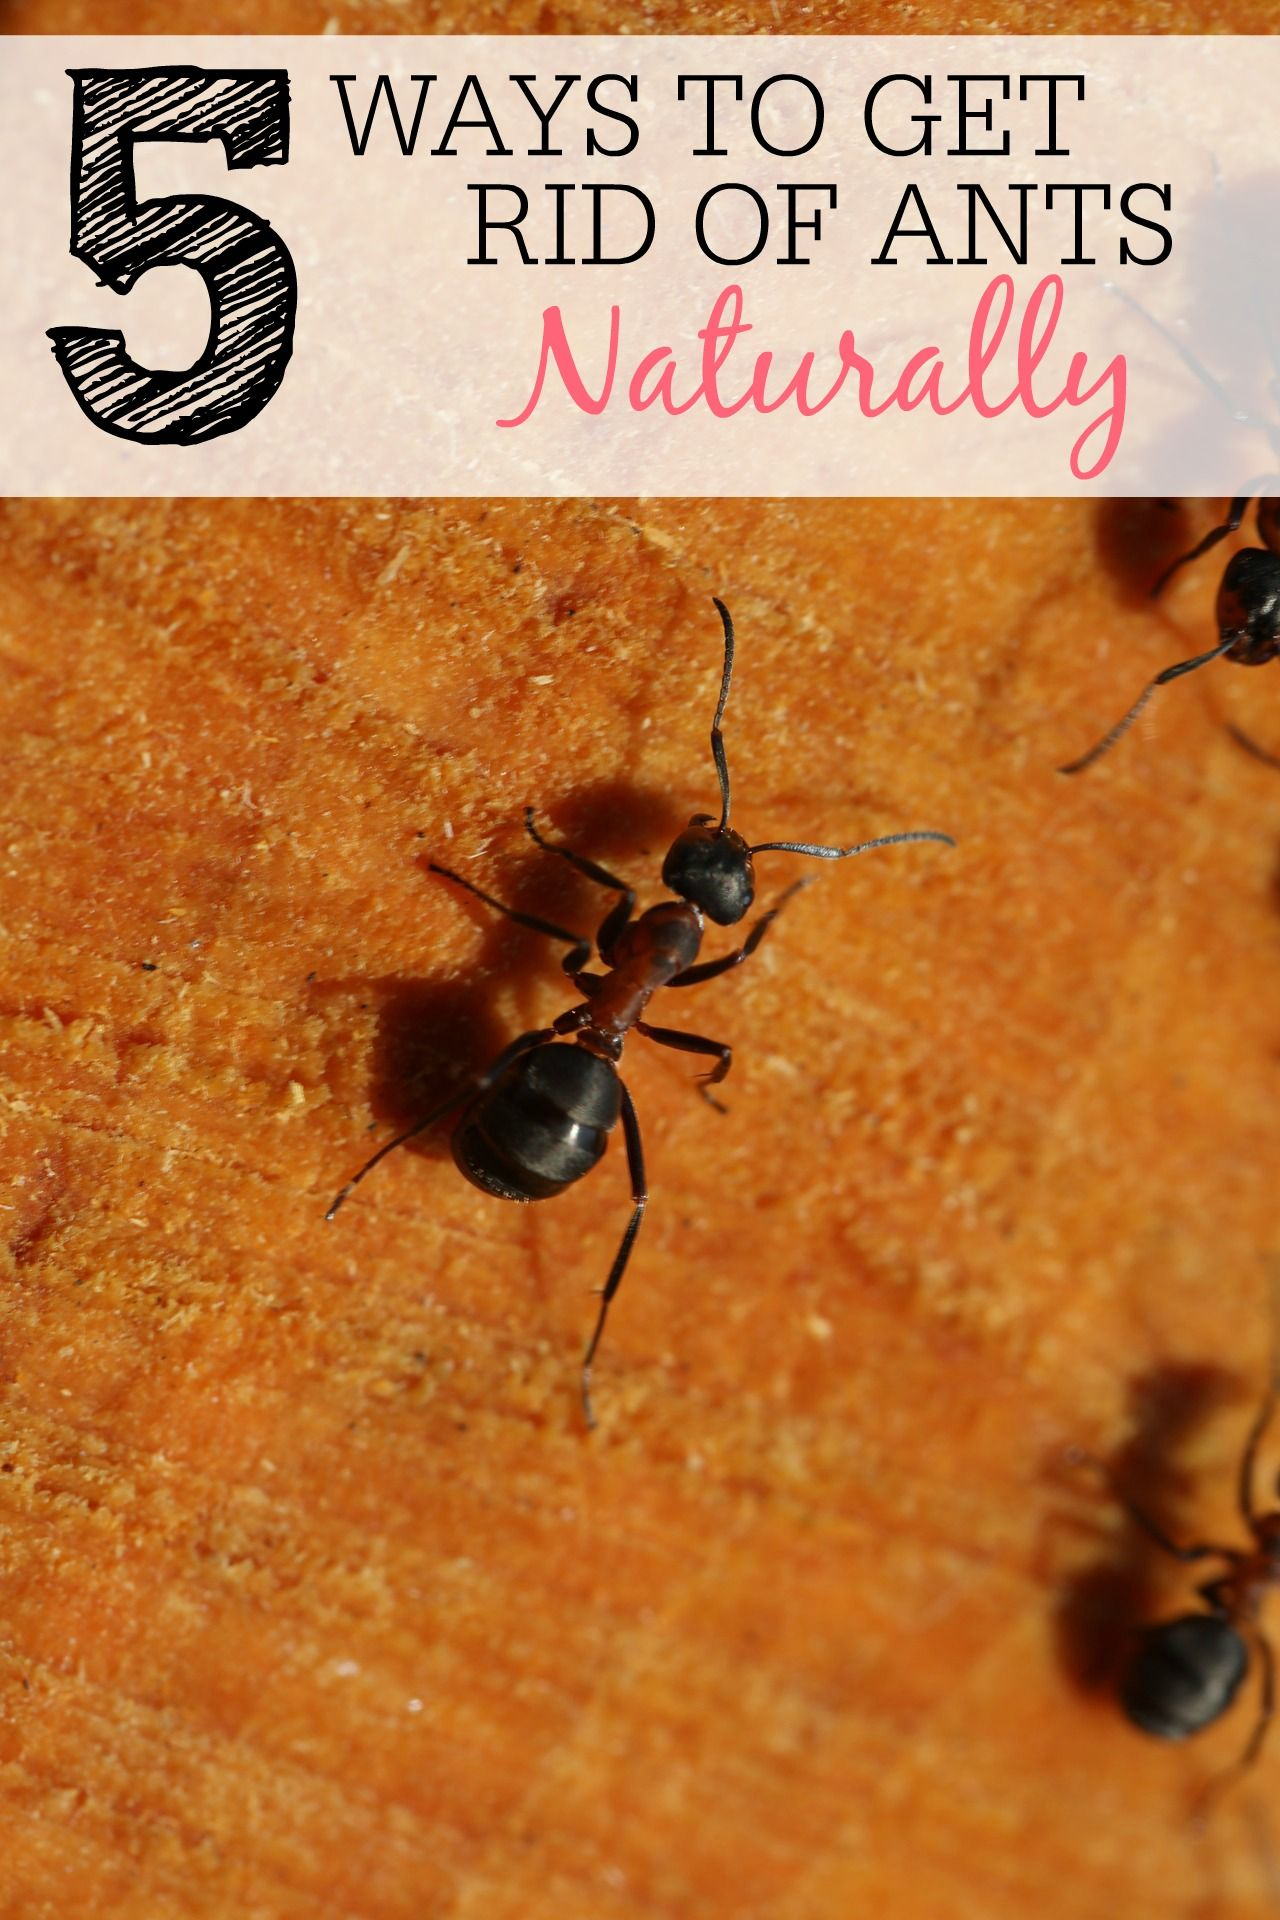 How To Get Rid Of Ants Naturally With Images Rid Of Ants Get Rid Of Ants Ants